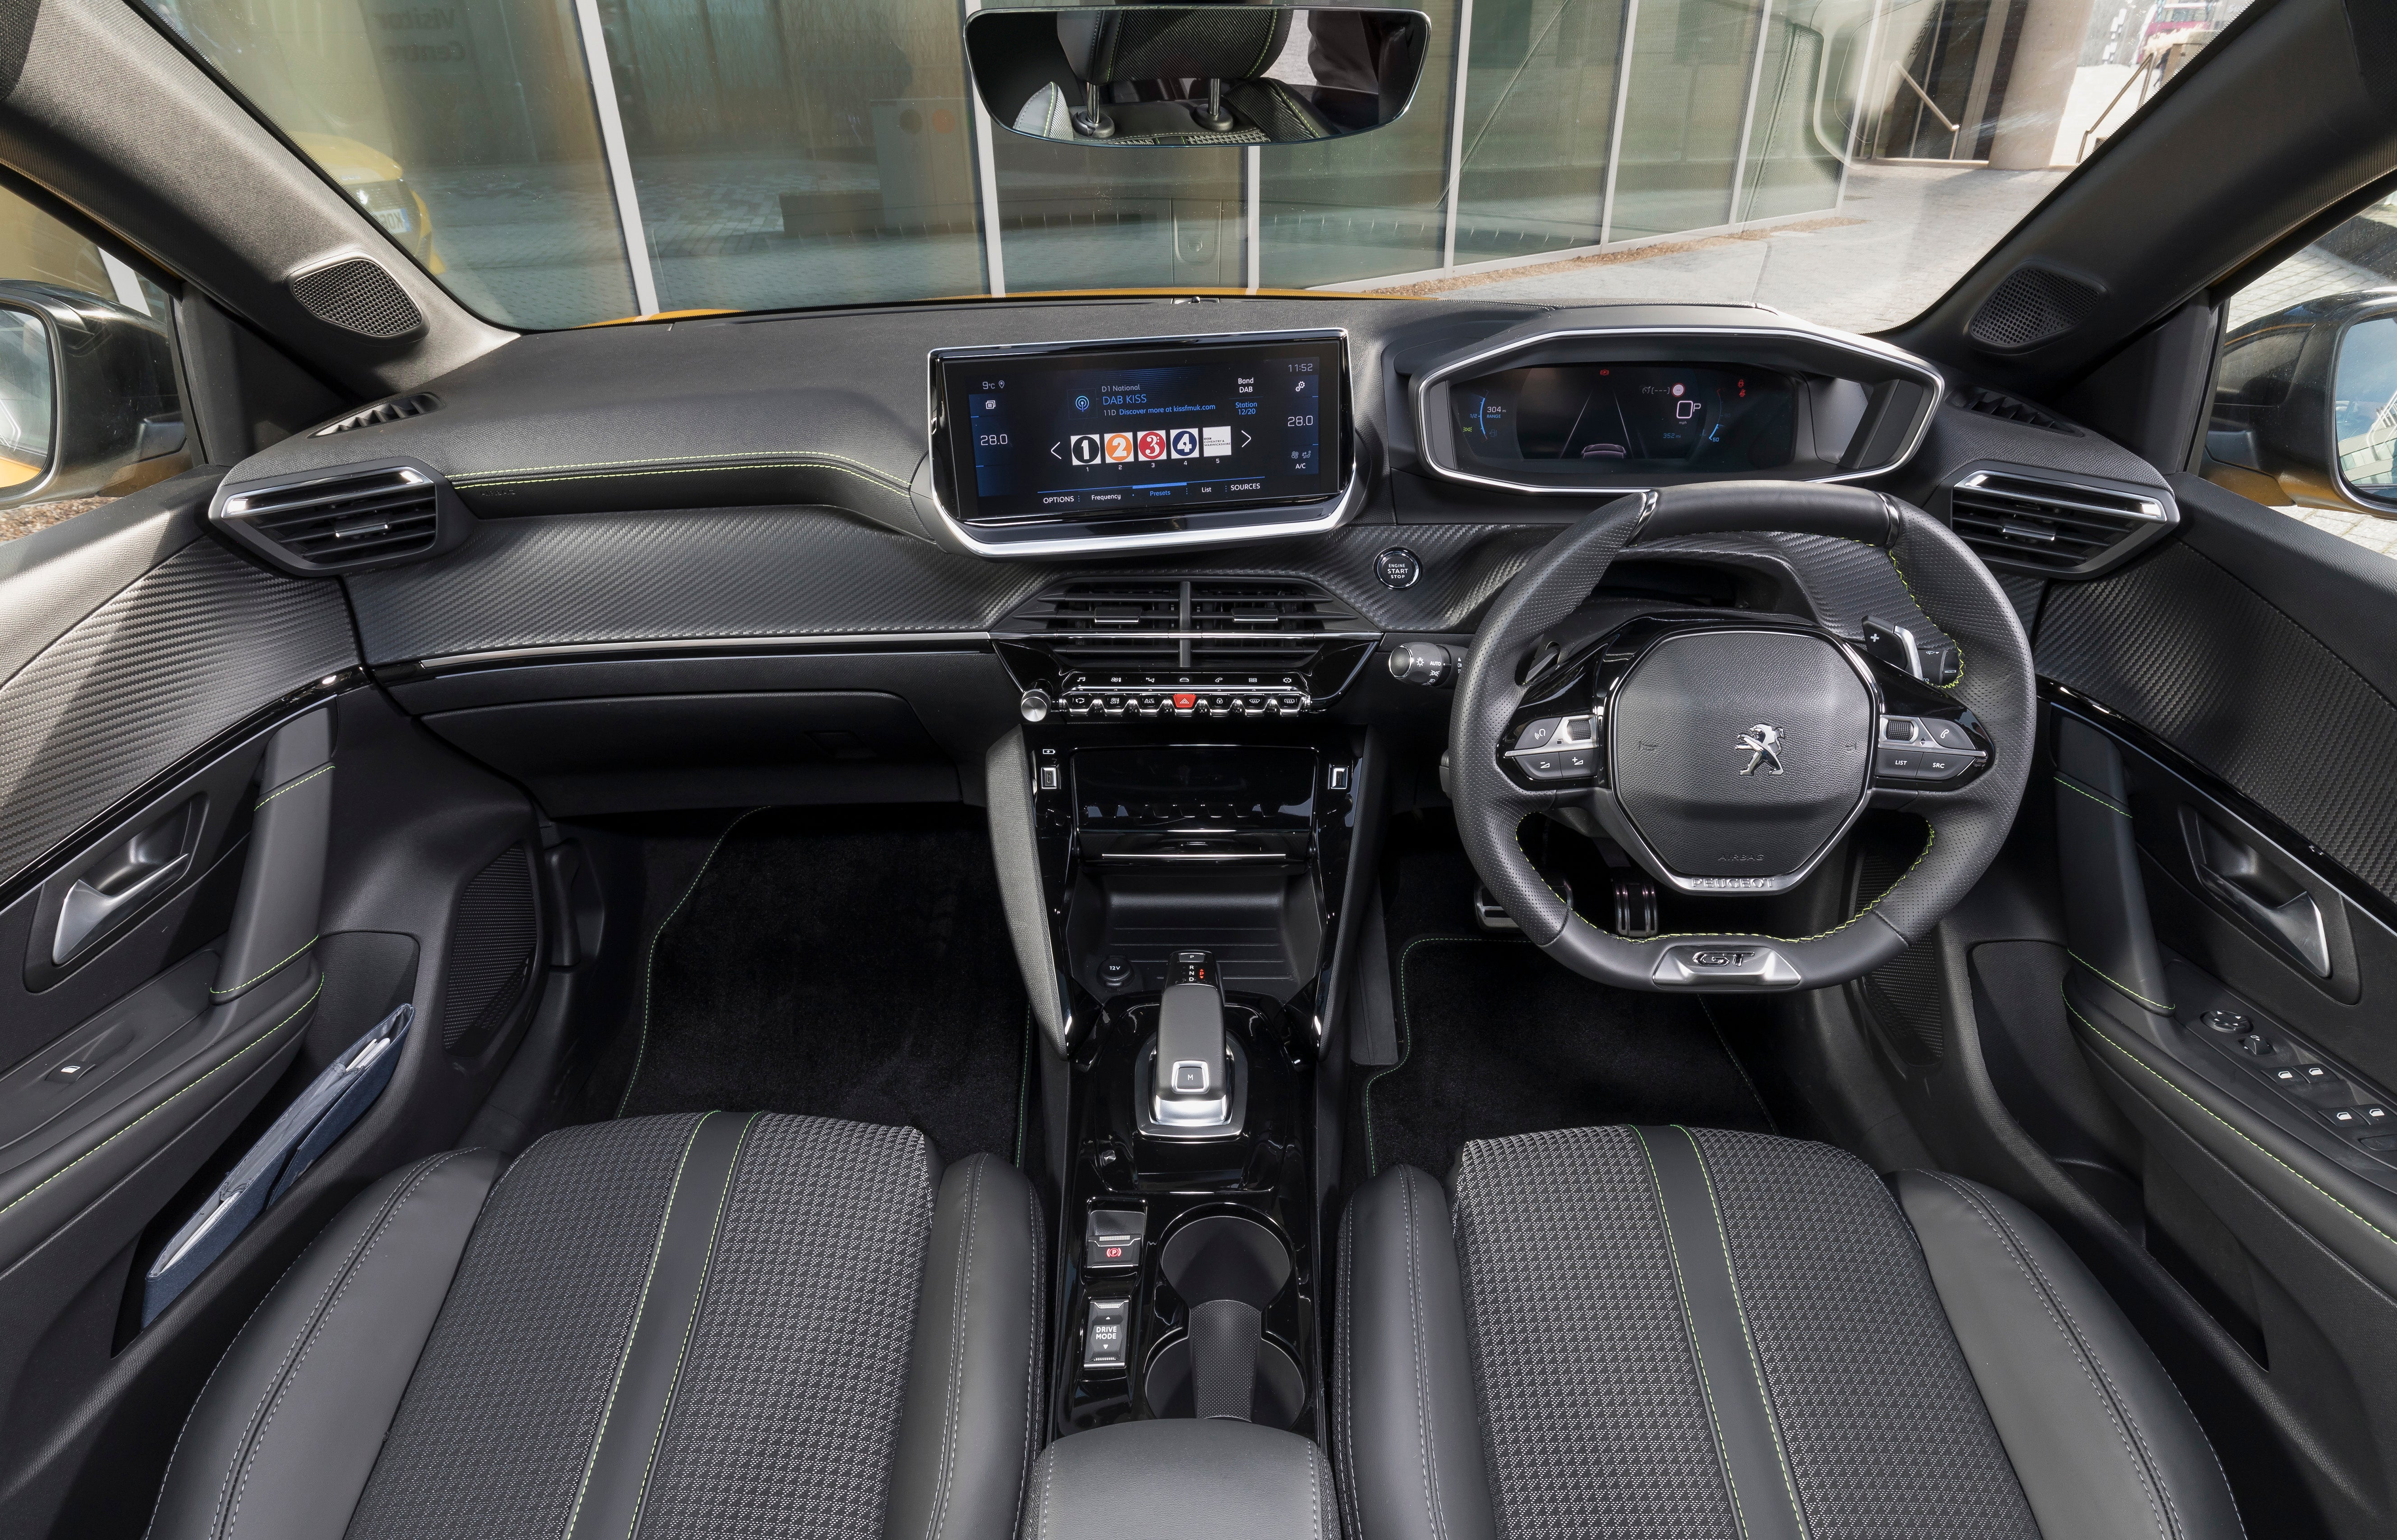 Peugeot 208 Review 2021 Front Interior